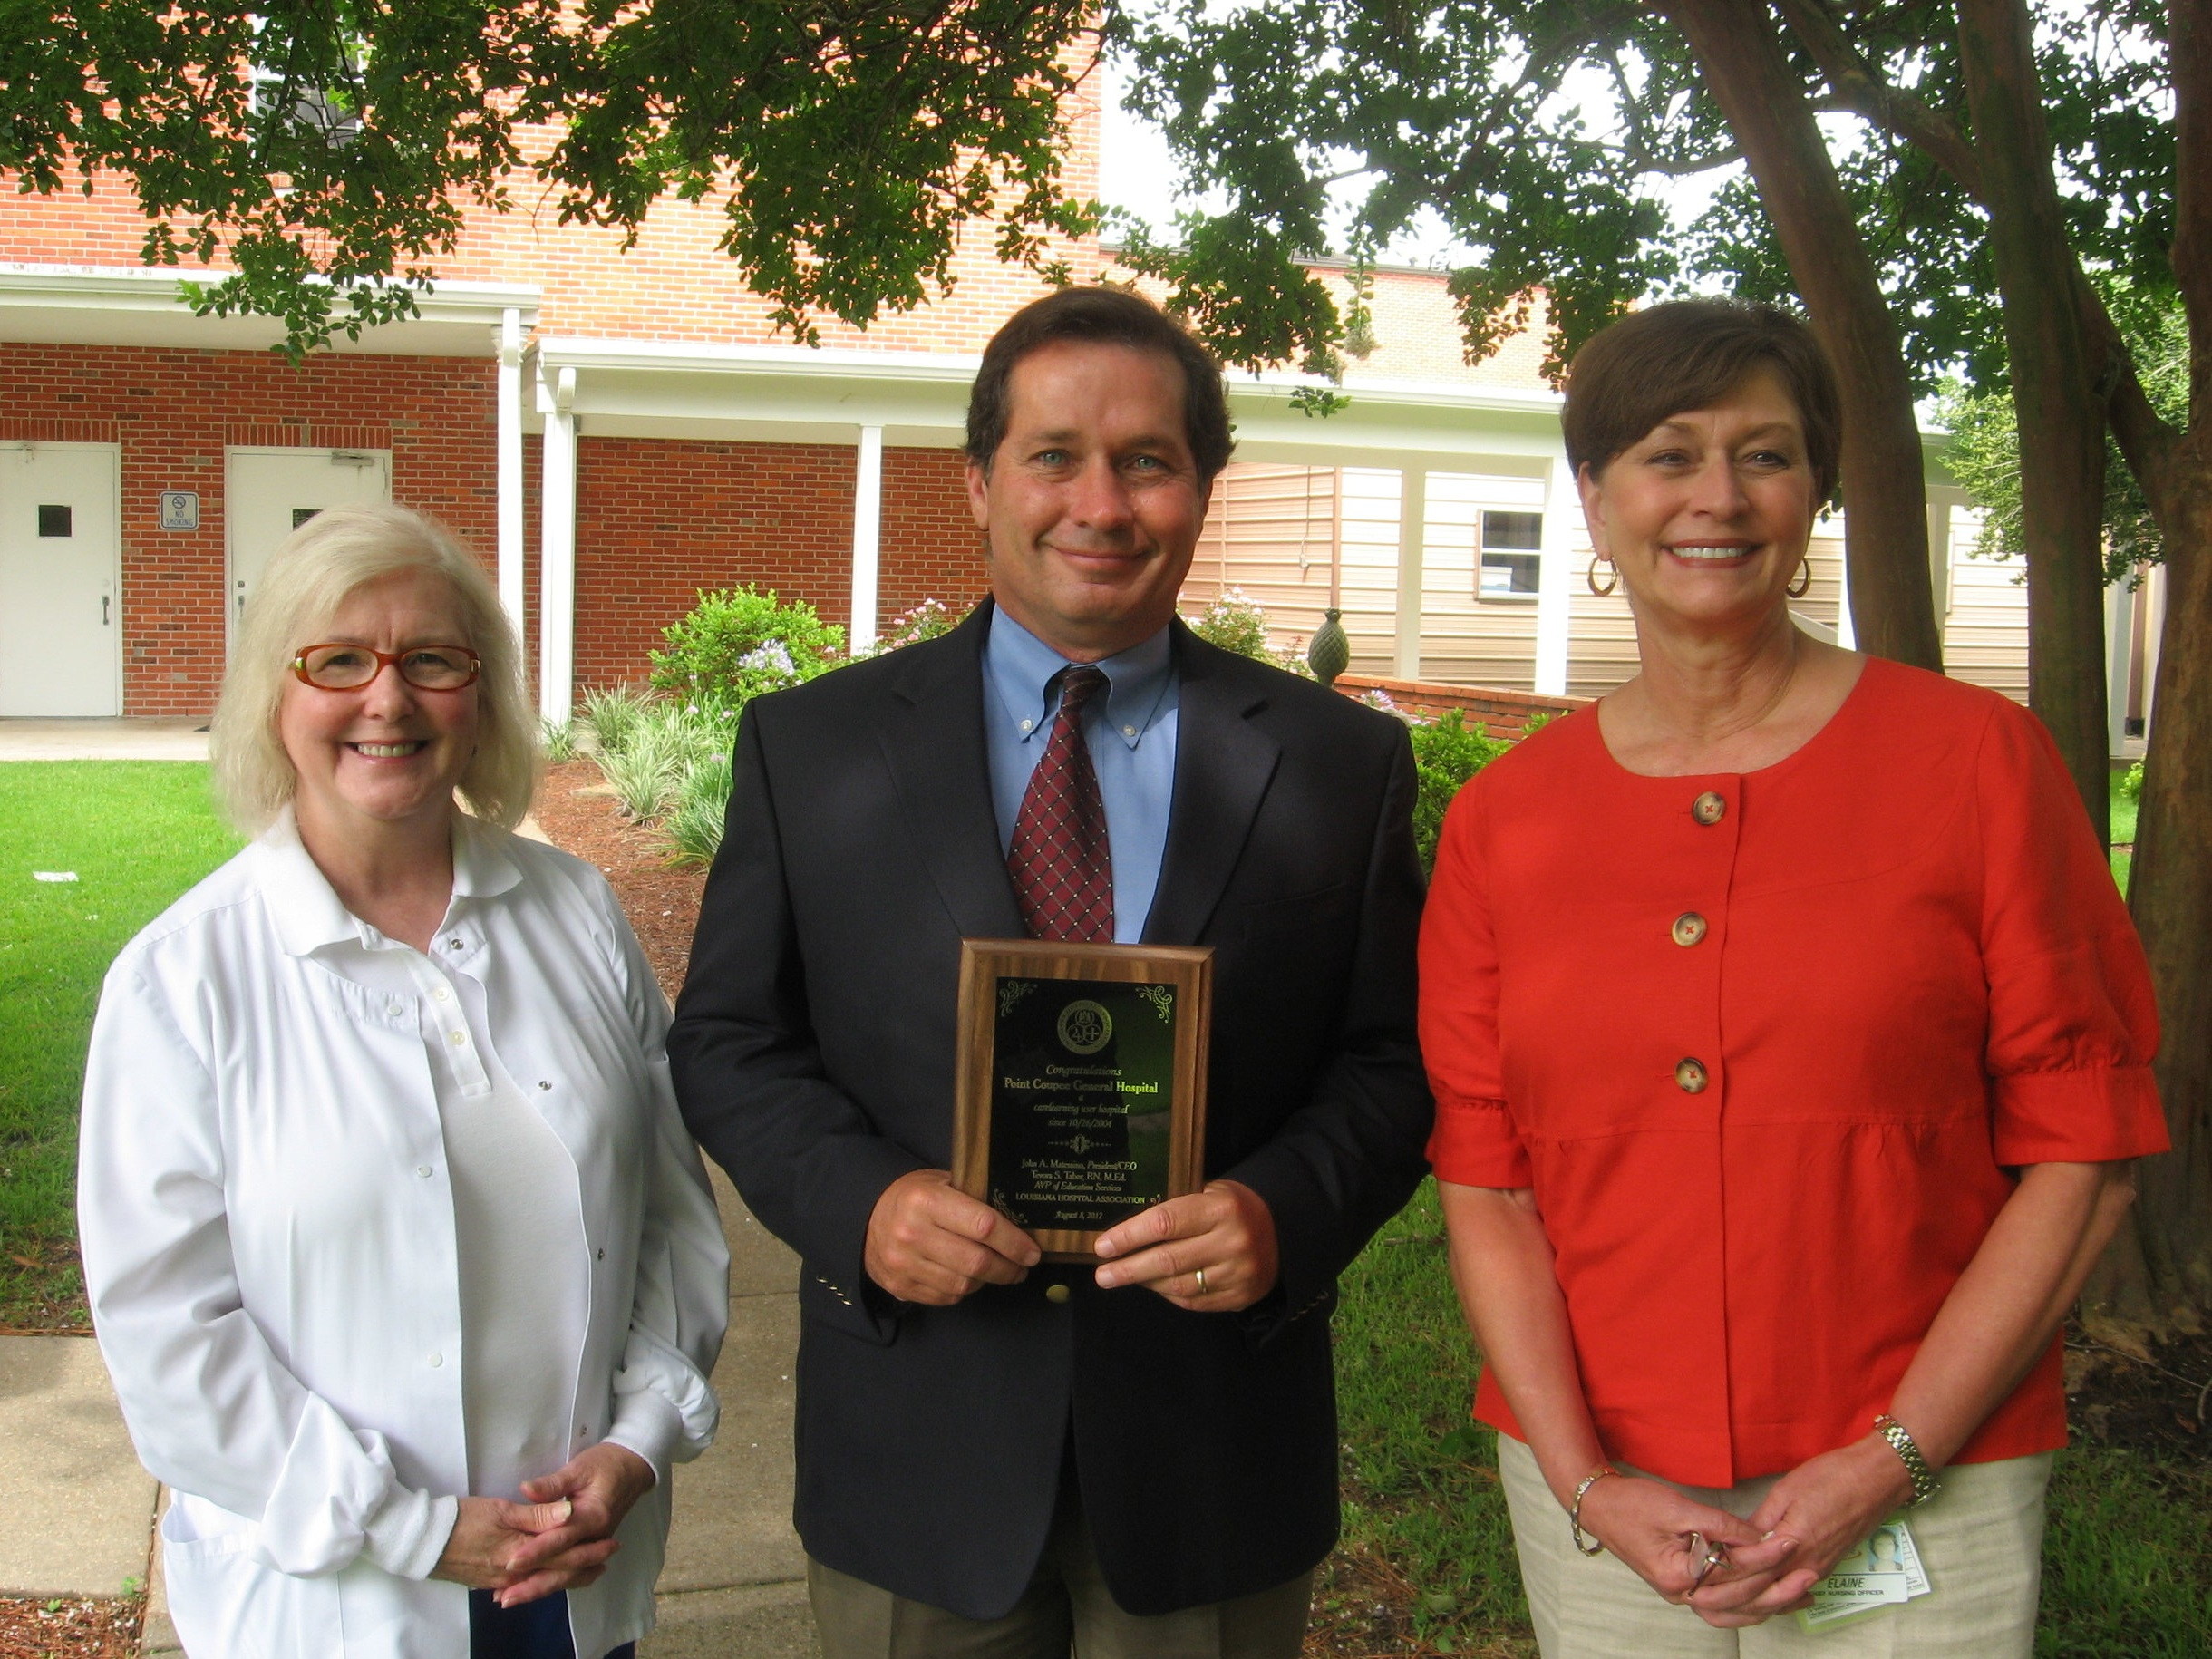 Maggie Jarreau (left), Chad Olinde, and Elaine Hurme display PCGH's NRHA award for performing in the top 20 of critical access hospitals.